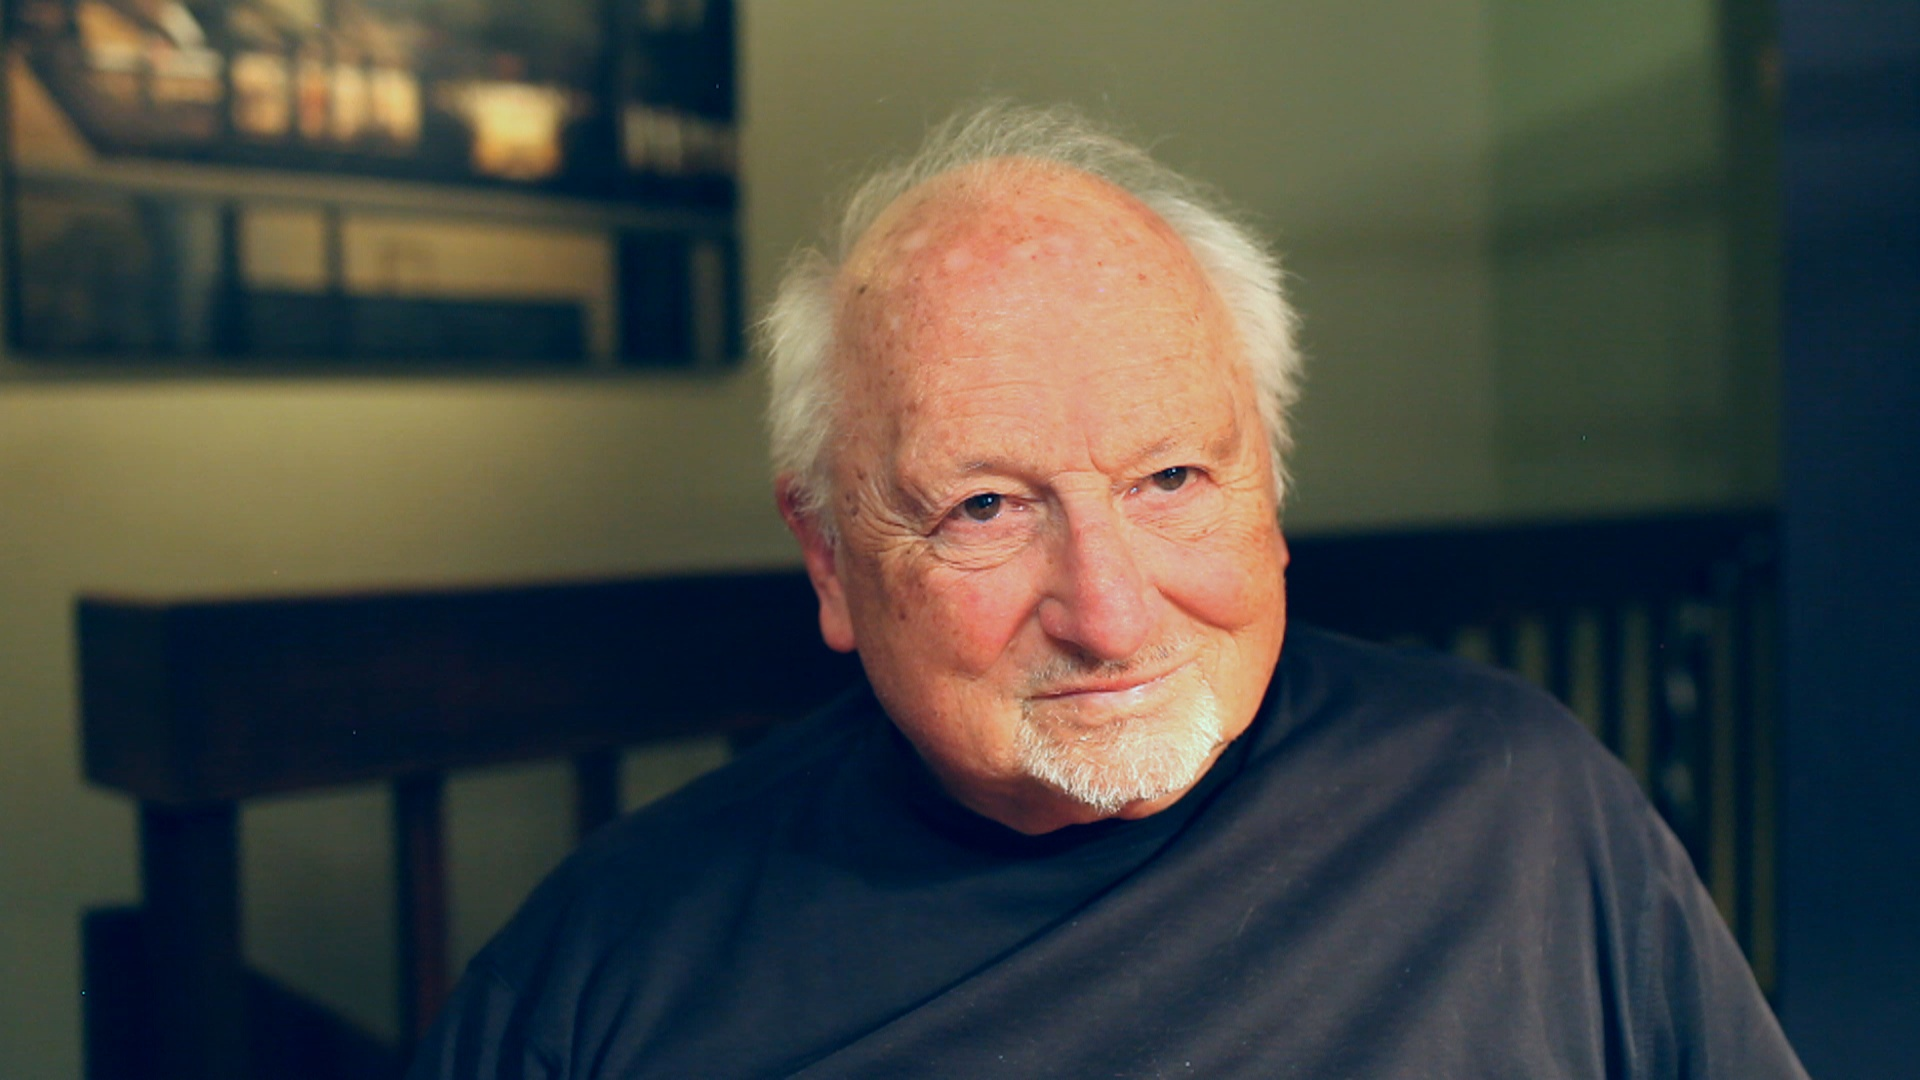 Chuck Peddle: Personal Computer Pioneer, Dies At 82